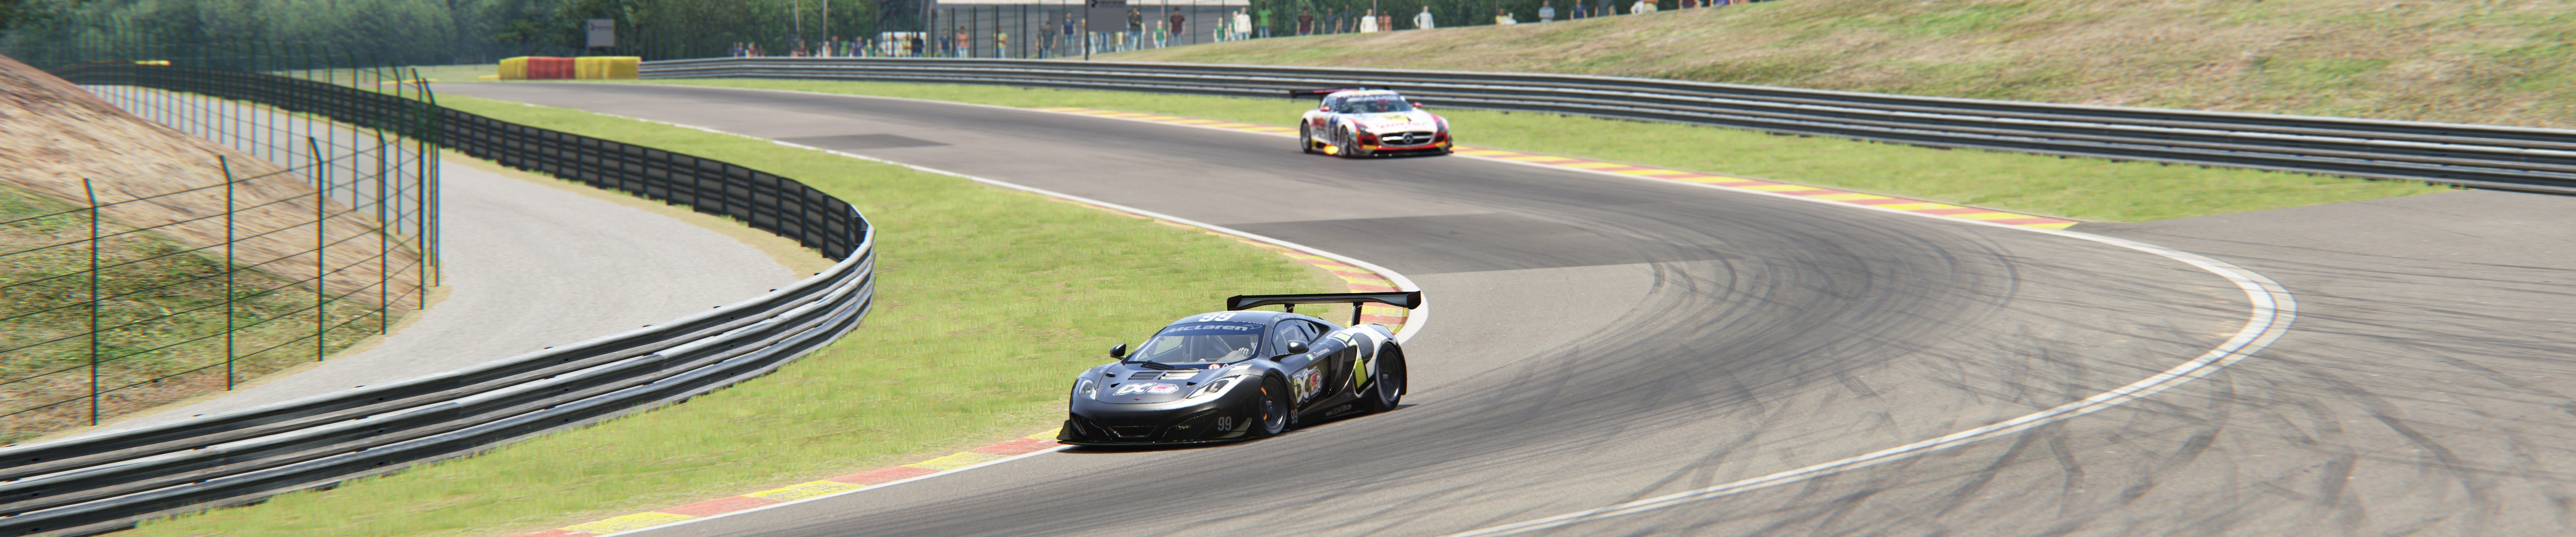 Screenshot_mclaren_mp412c_gt3_spa_1-2-117-16-27-44